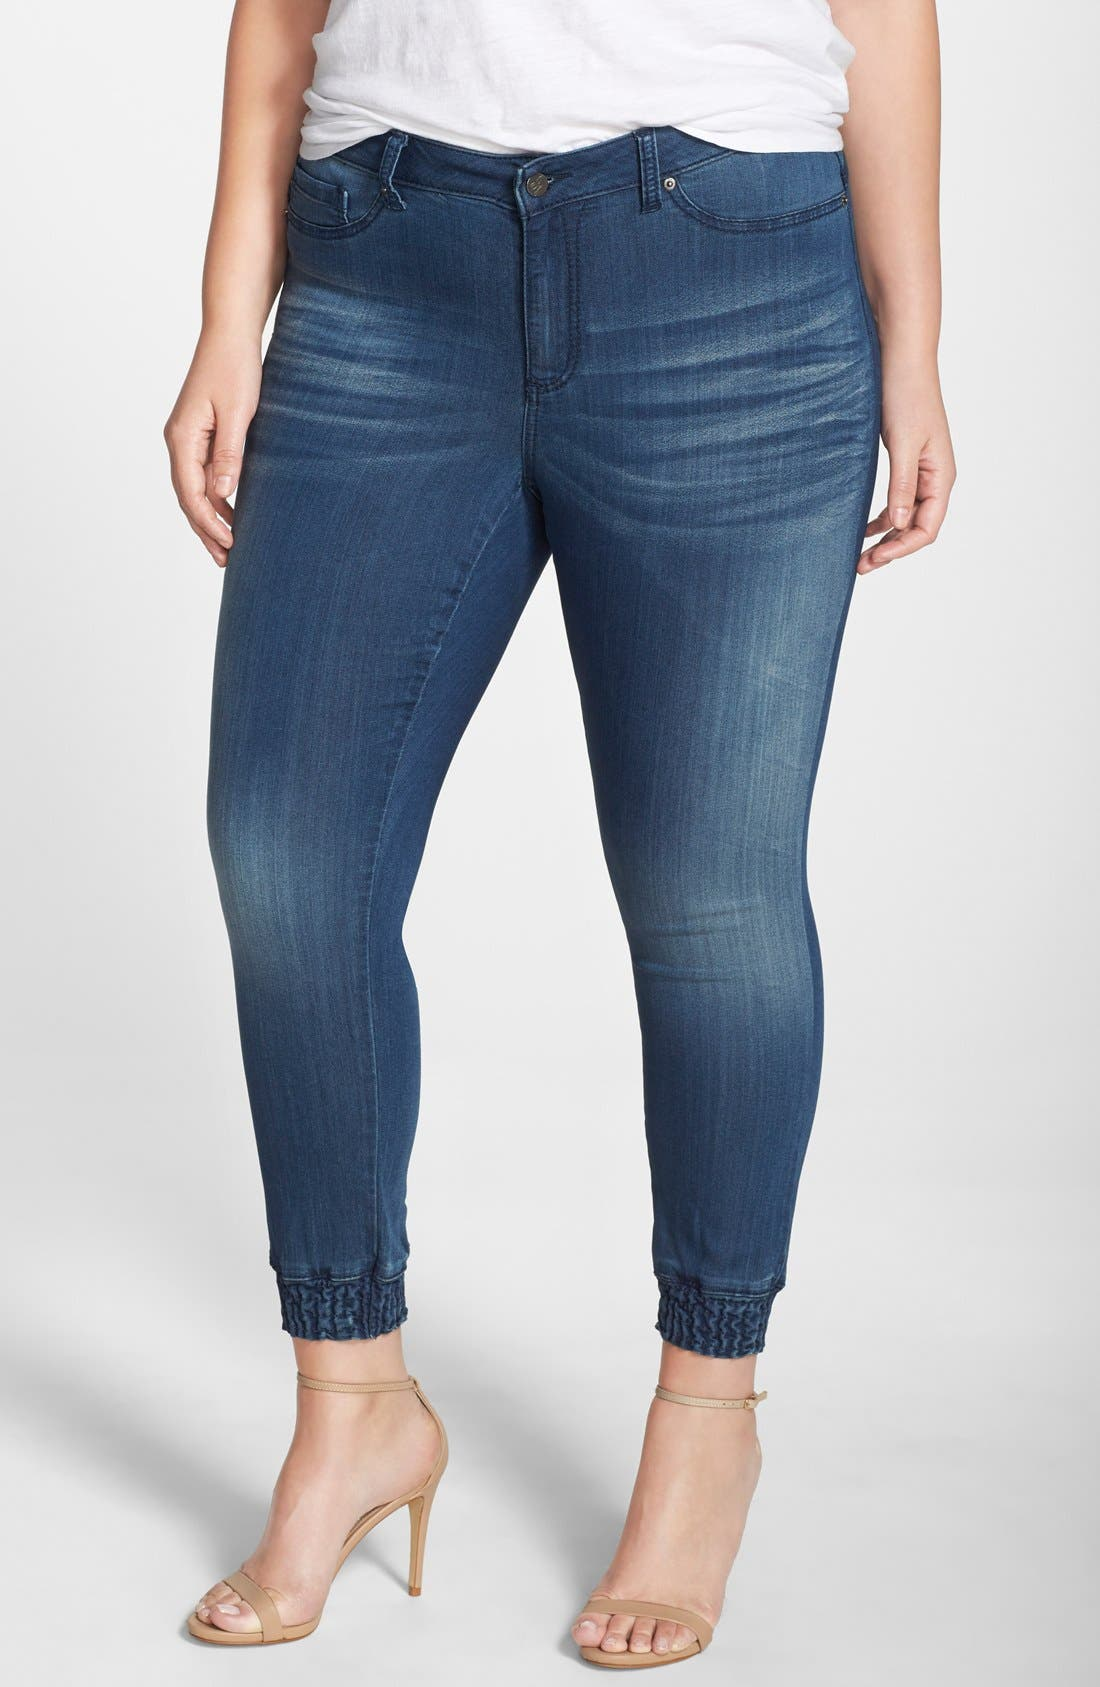 Alternate Image 1 Selected - Poetic Justice 'Suzzie' Stretch Knit Denim Crop Jeans (Plus Size)